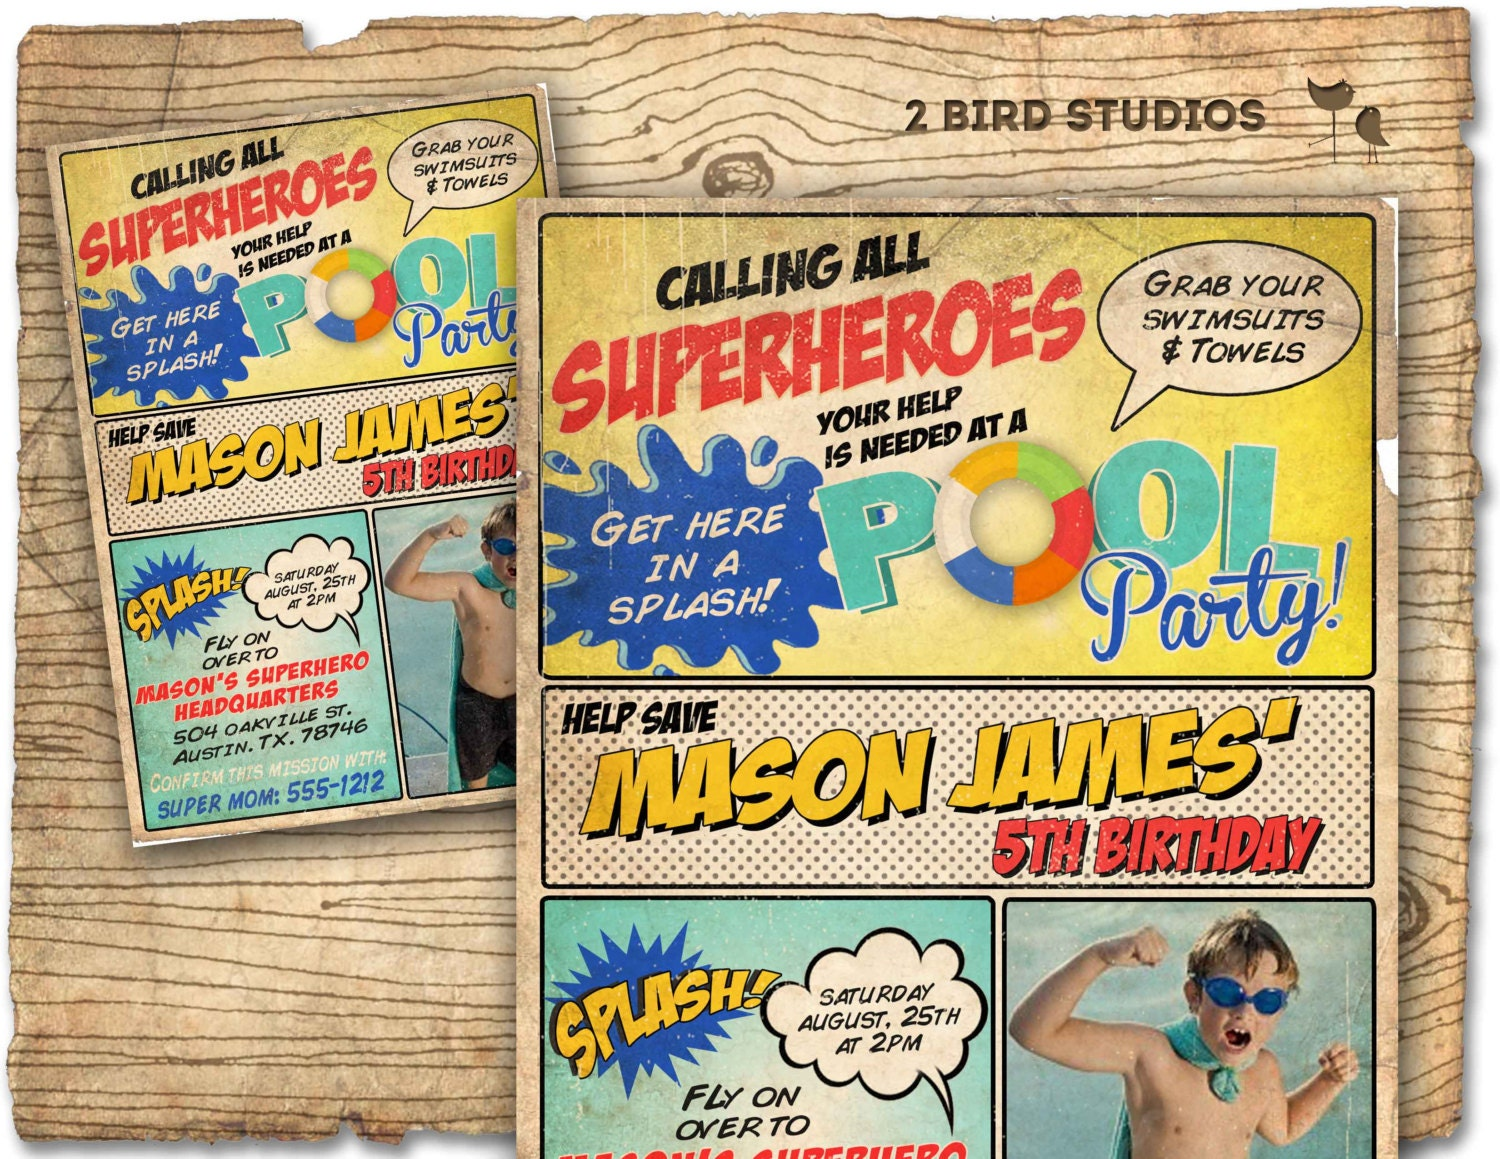 Superhero invitation Superhero party invitation Superhero